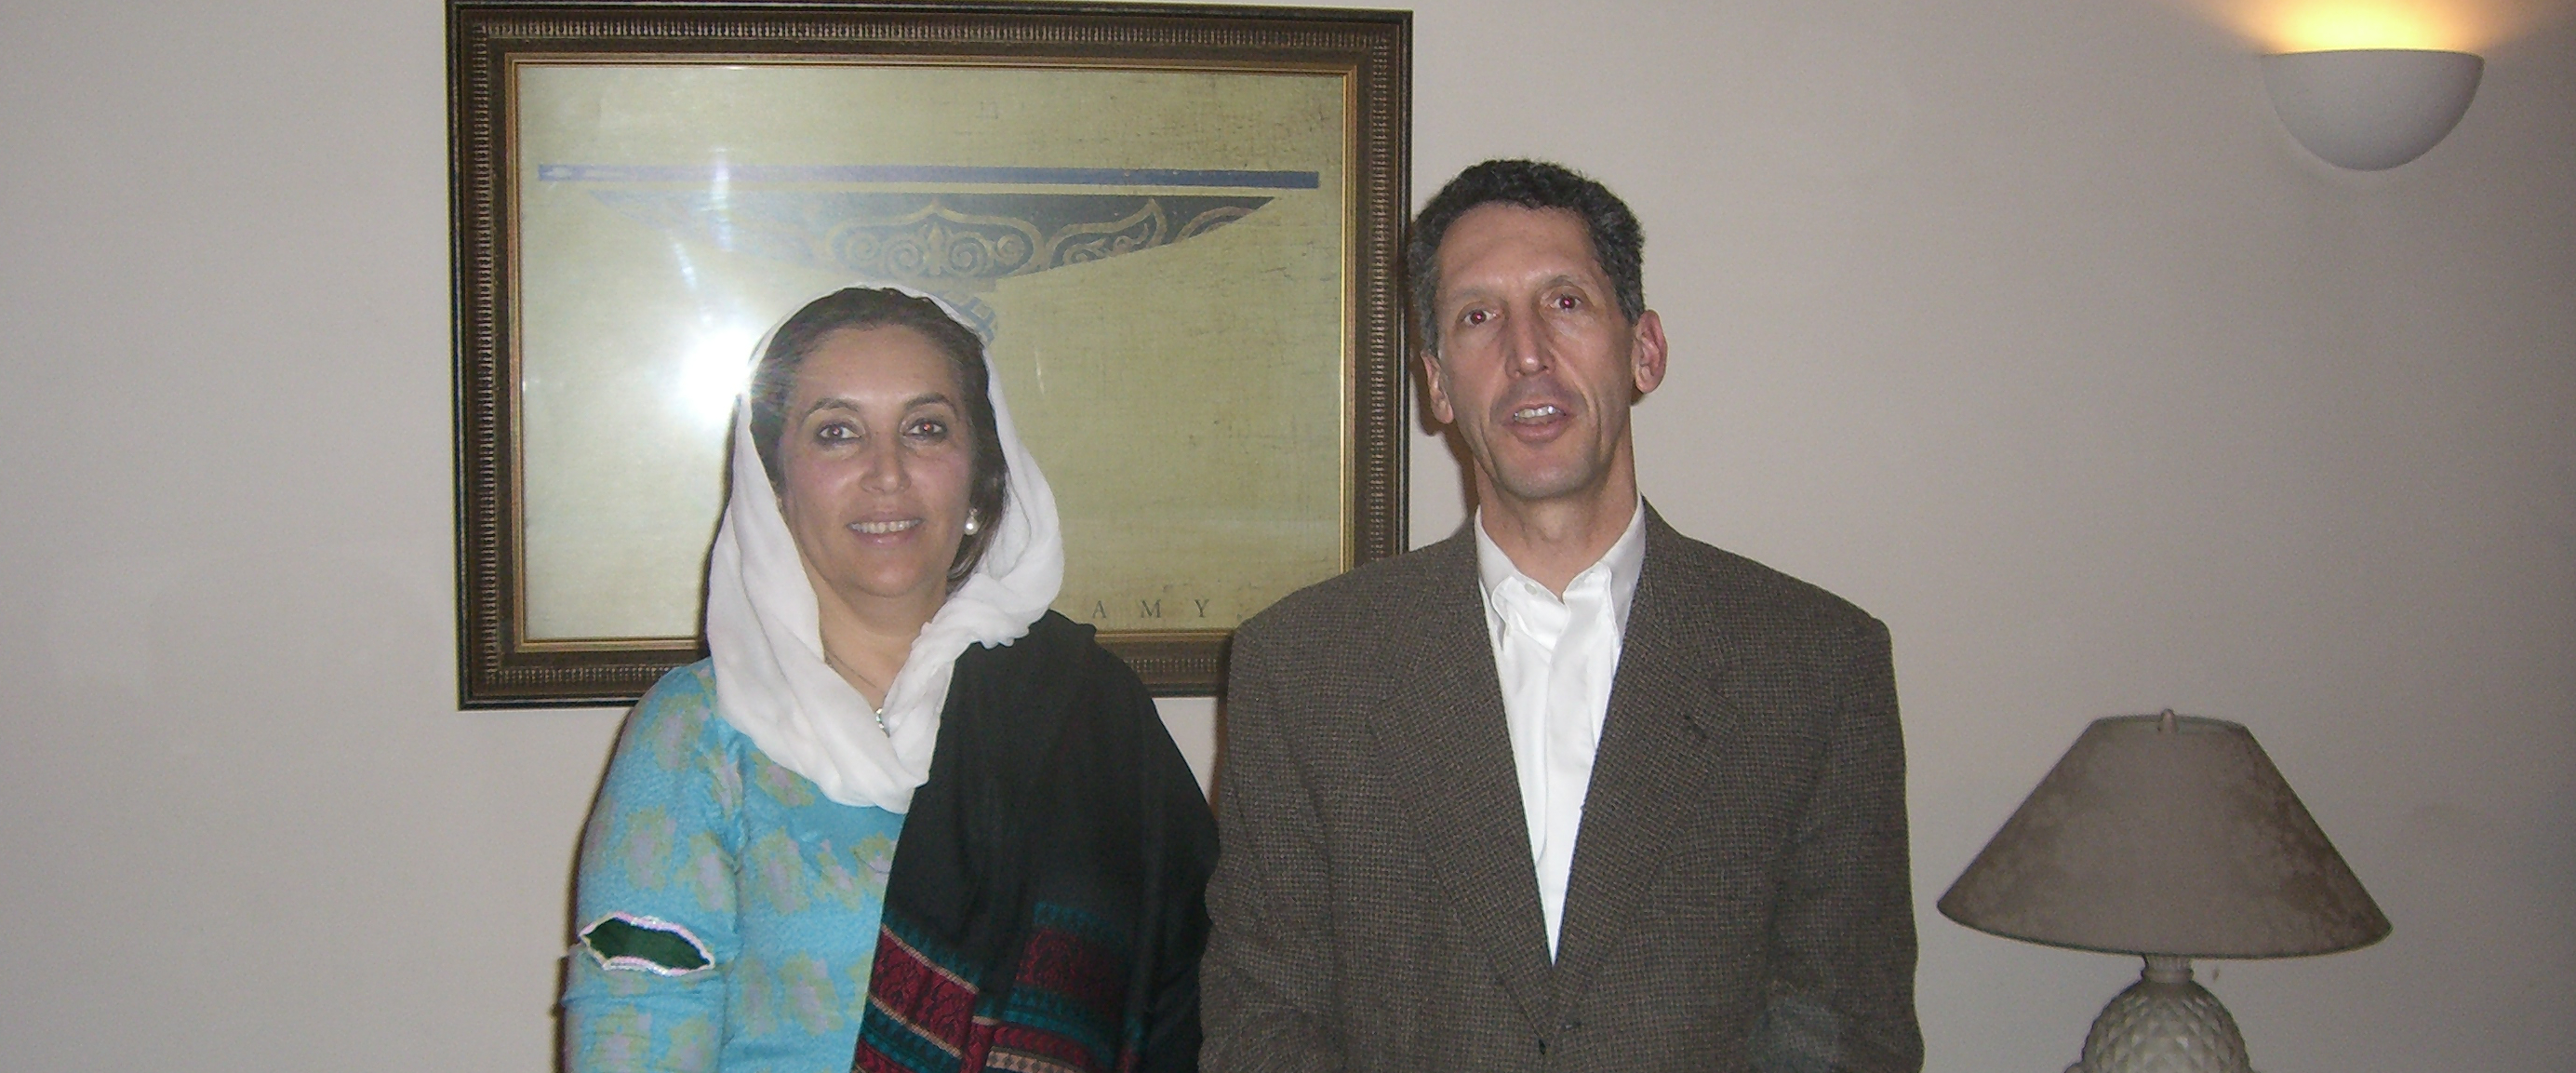 Edward P. Joseph photographed with Benazir Bhutto in Peshawar, Pakistan, on 26 December, 2007 -- less than 24 hours before she was assassinated.  Our wide-ranging meeting lasted 90 minutes. Bhutto was engaging, determined and fearless.